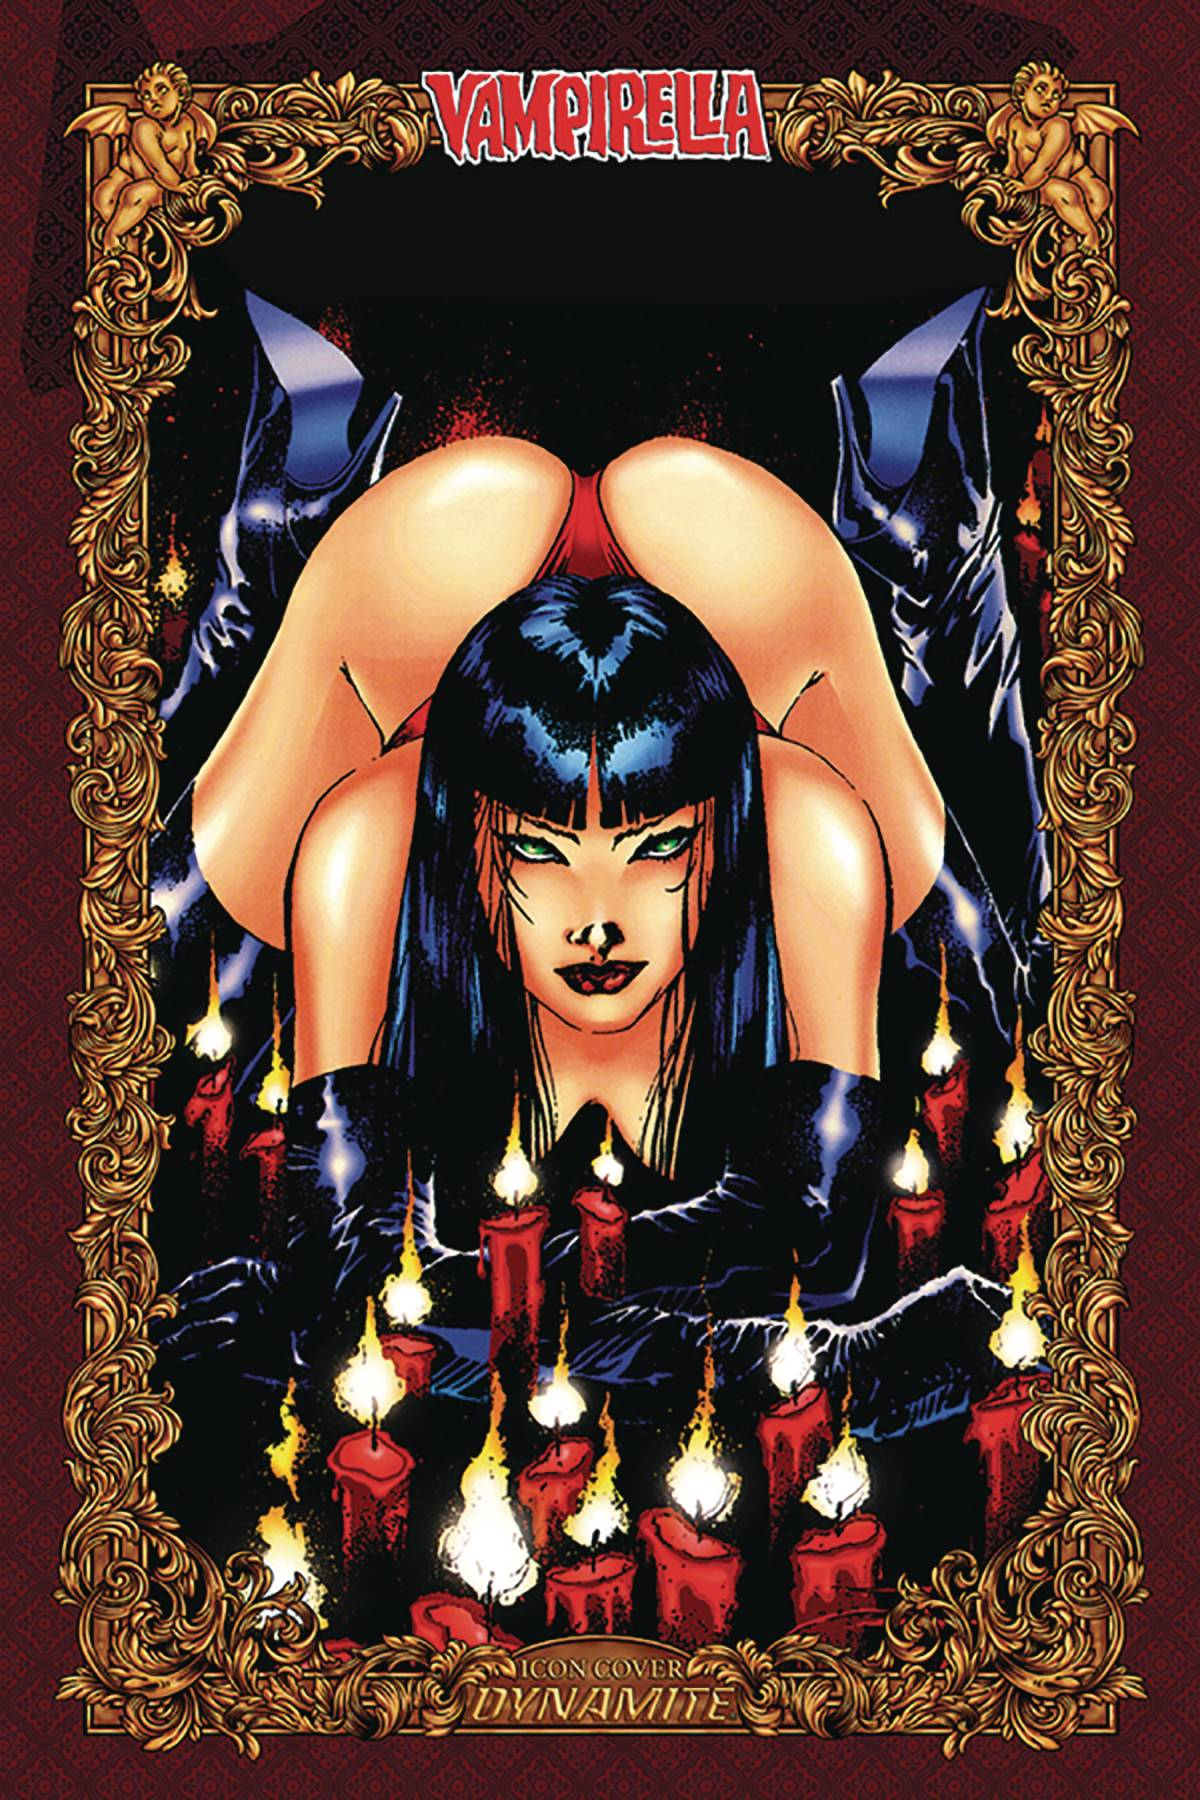 VENGEANCE OF VAMPIRELLA 1 75 COPY LEE ICON INCV.jpg